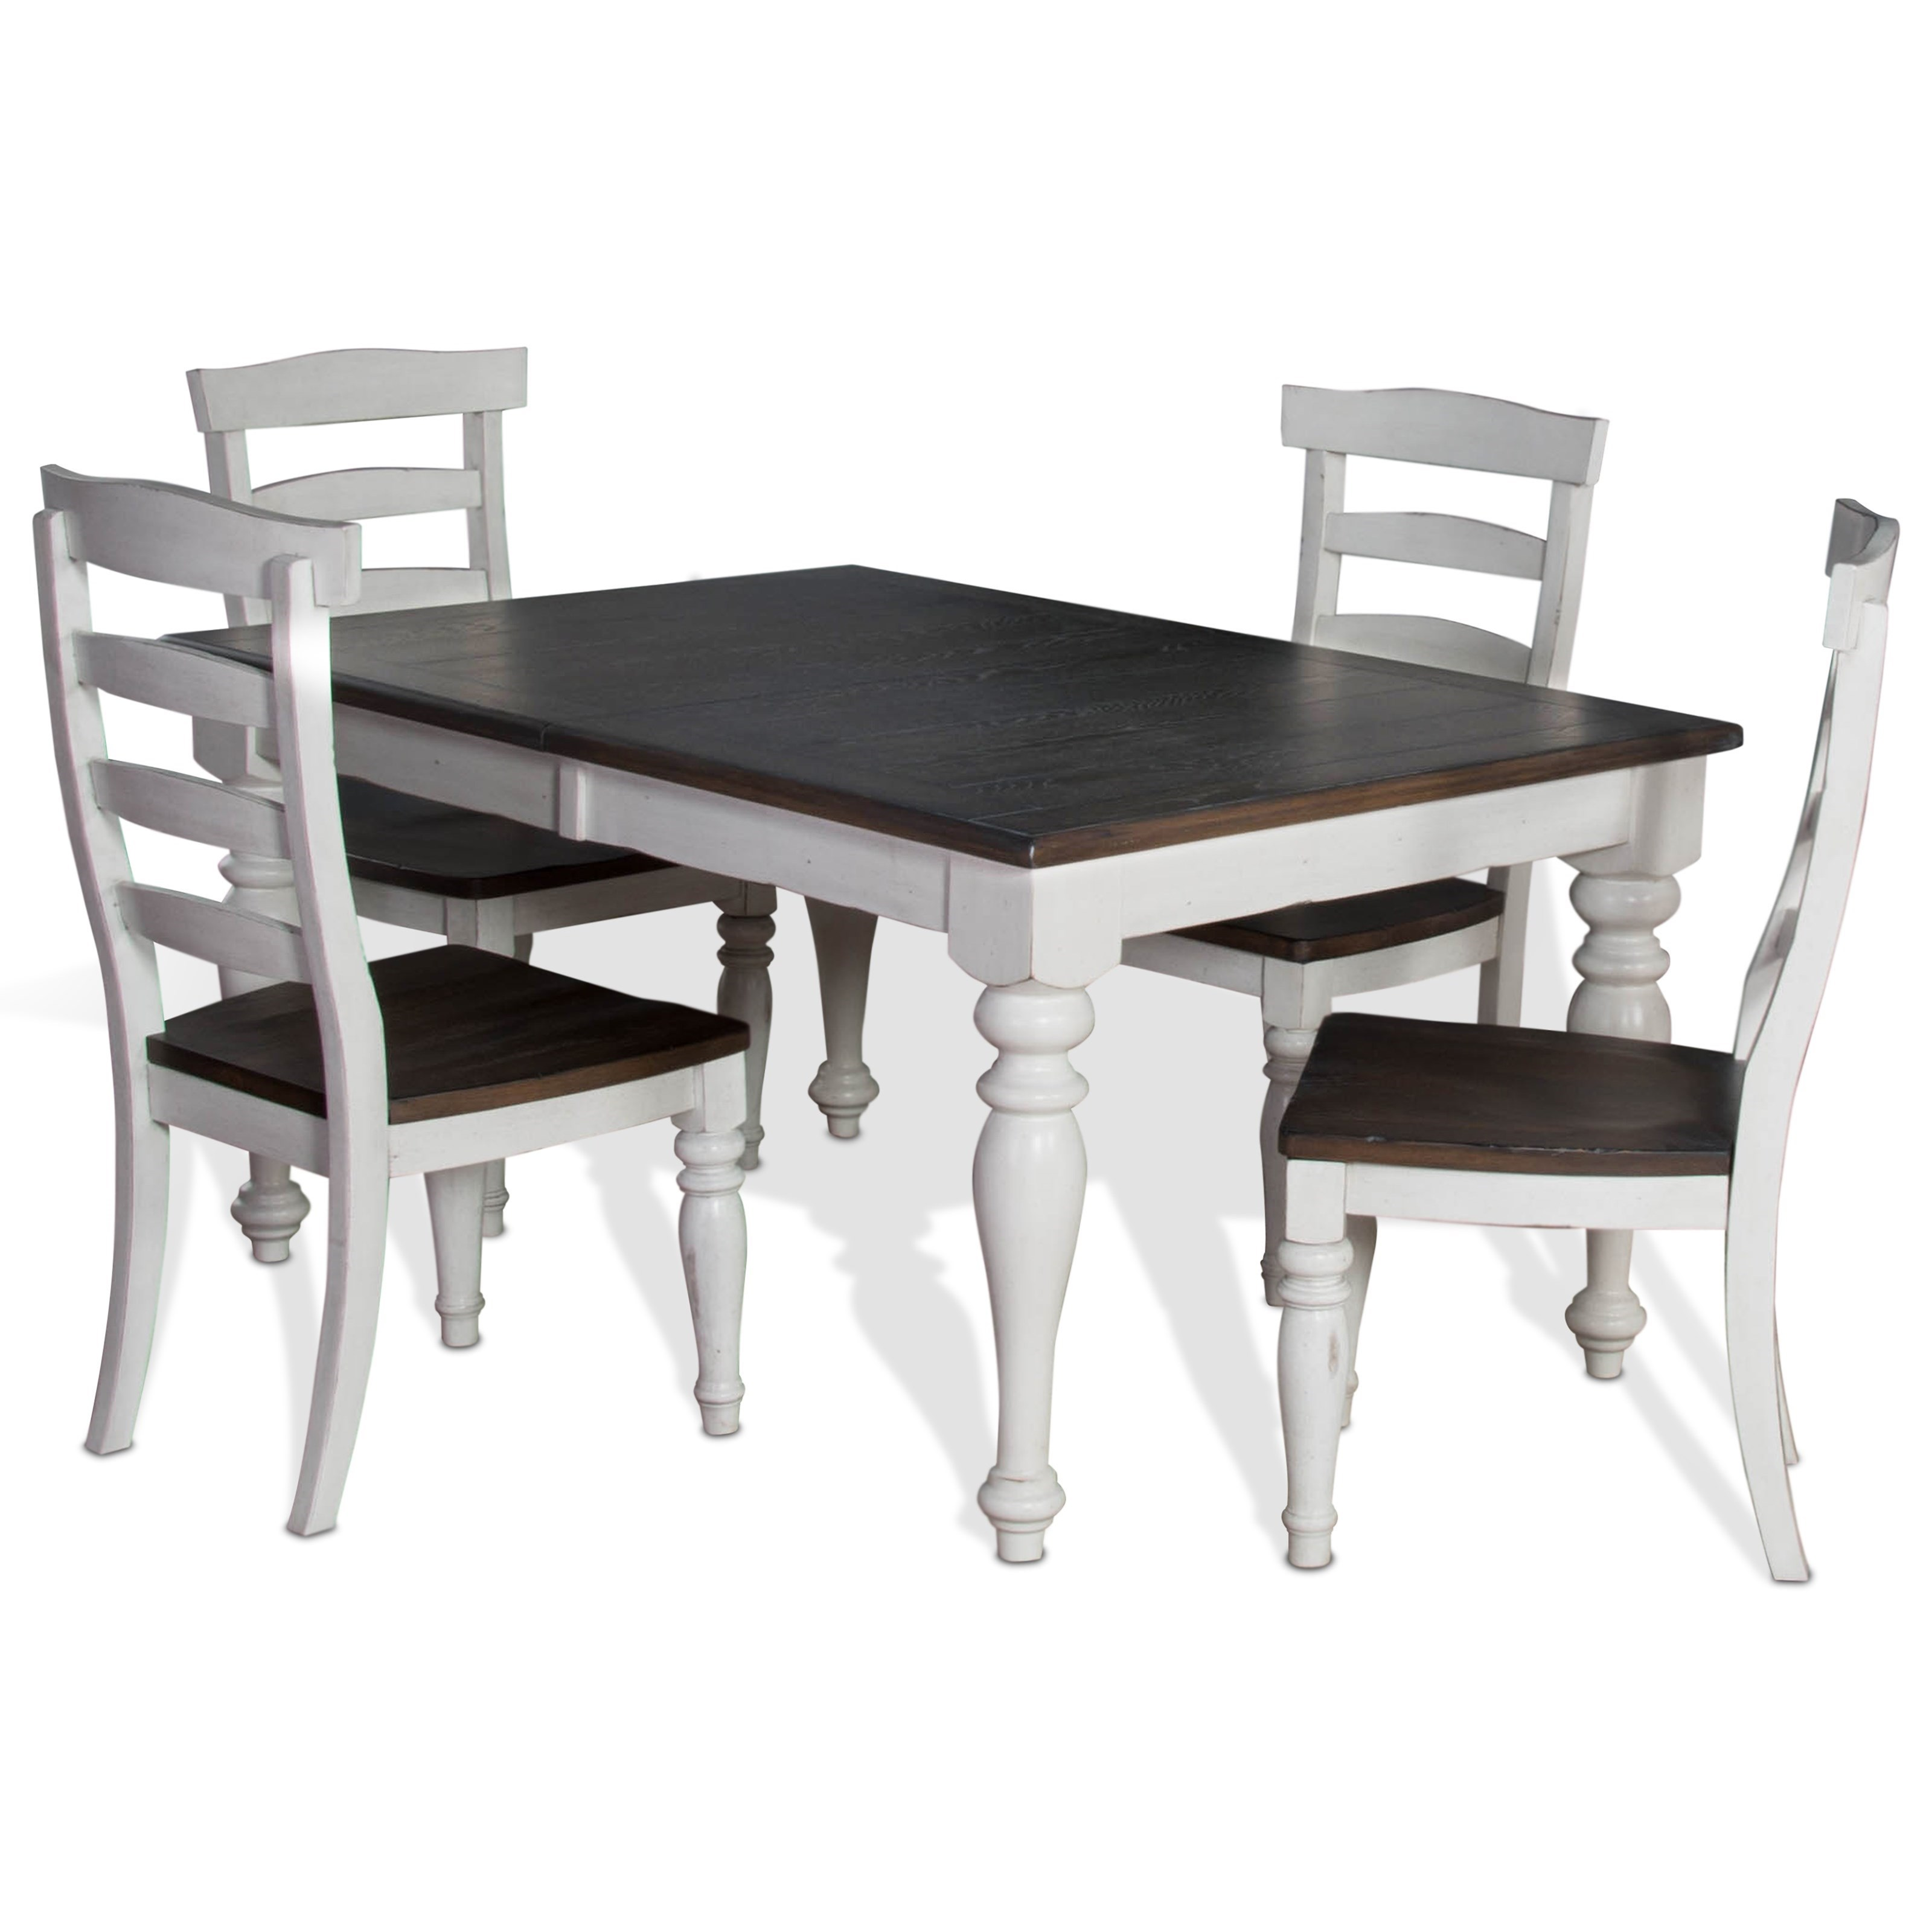 Sunny Designs Bourbon Country 5-Piece Extension Dining Table Set - Item Number: 1015FC+4x1432FC-W